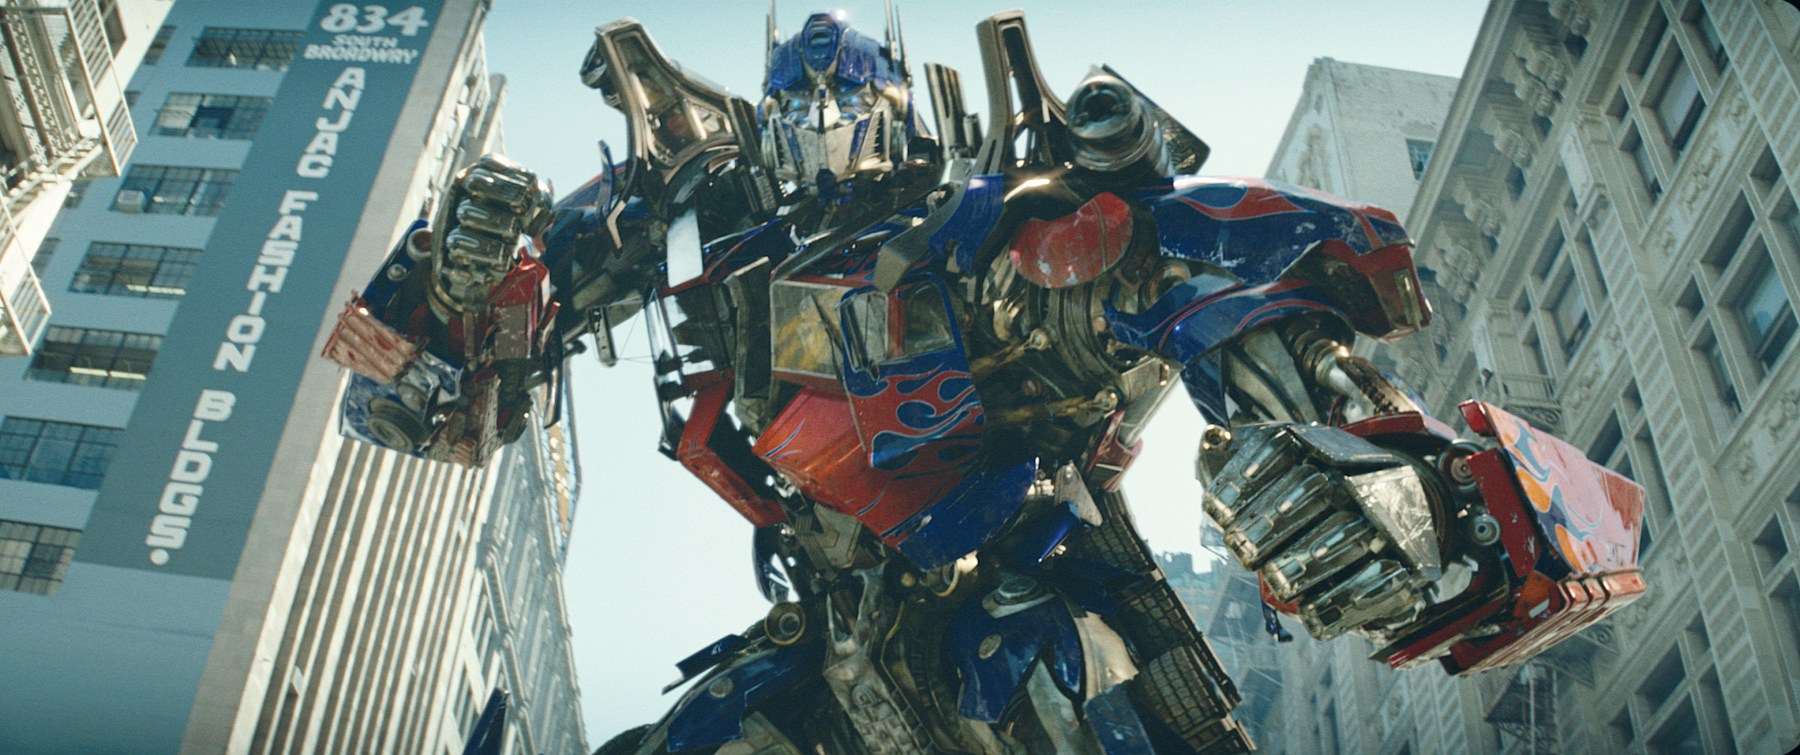 Transformers images Optimus Prime HD wallpaper and background photos